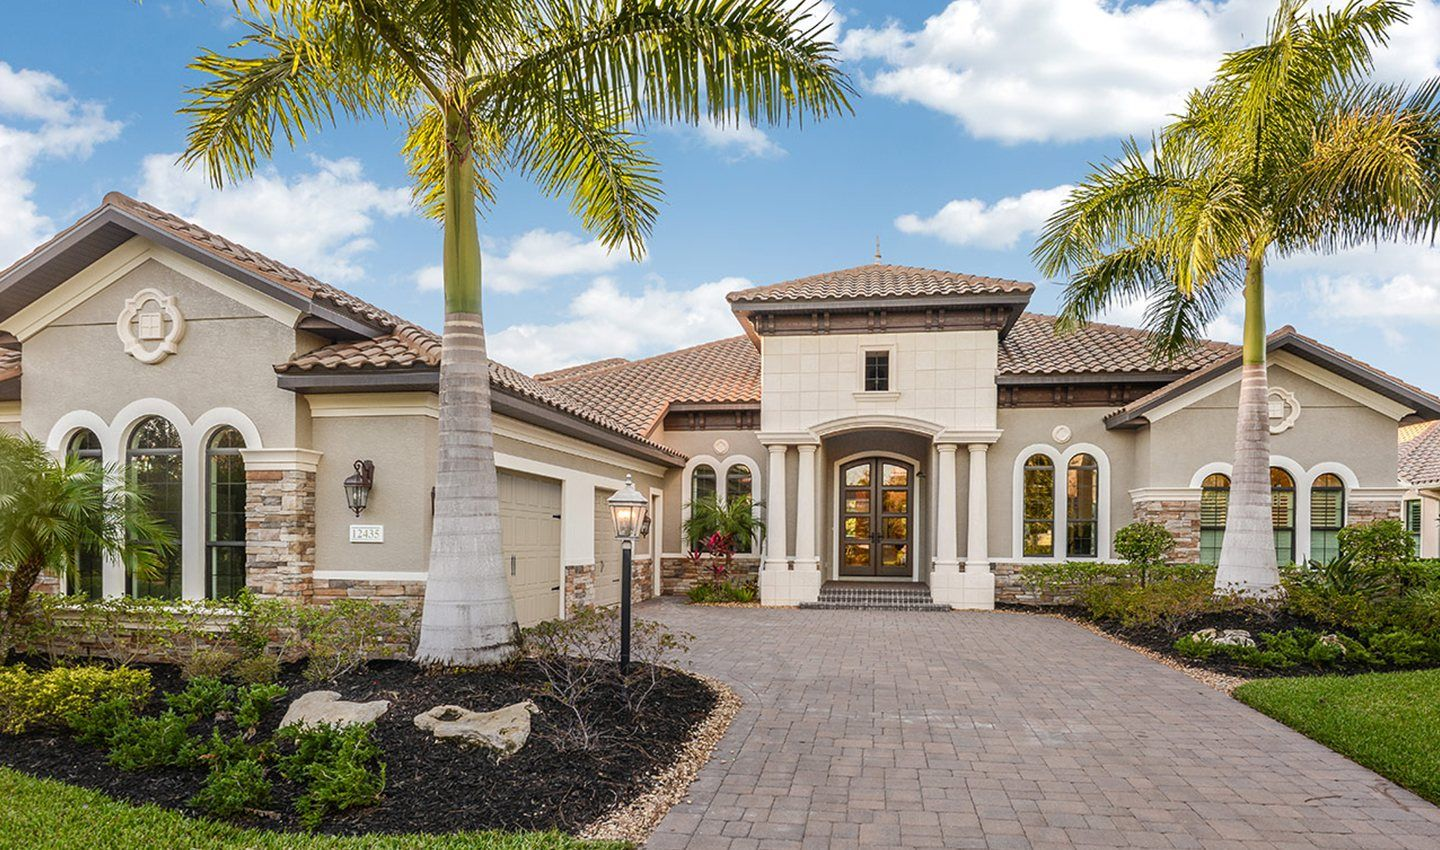 Single Family for Active at Country Club West - Highfield - Barbados Ii Neal Signature Homes At Country Club East Lakewood Ranch, Florida 34202 United States